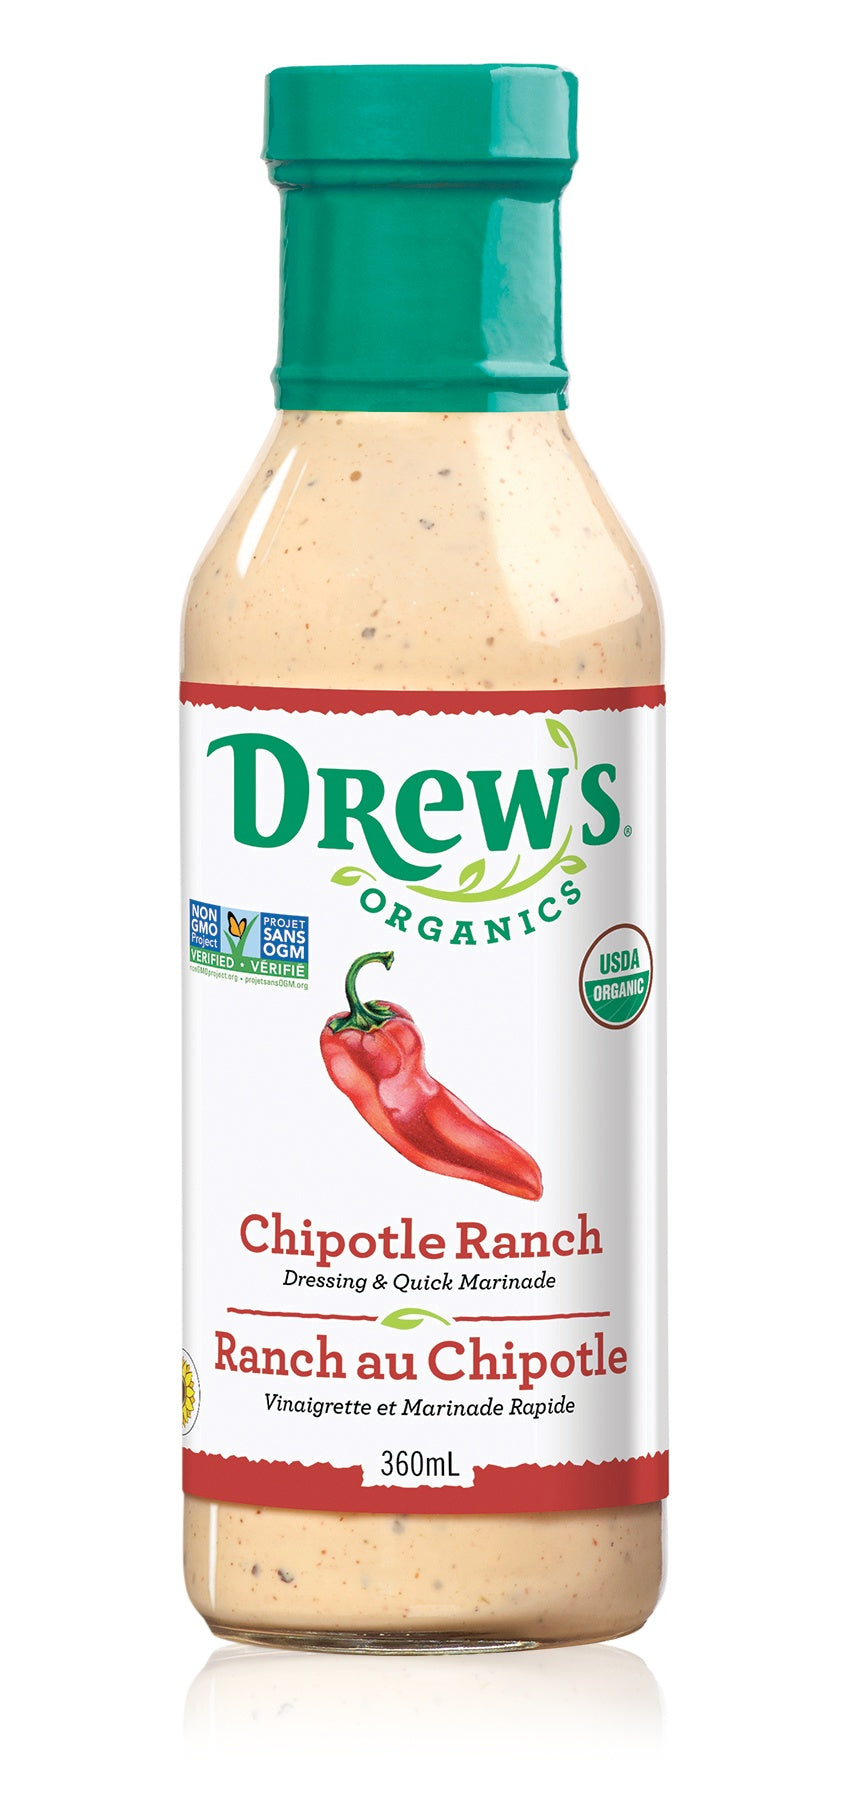 Food & Drink - Drew's - Chipotle Ranch Dressing, 360ml